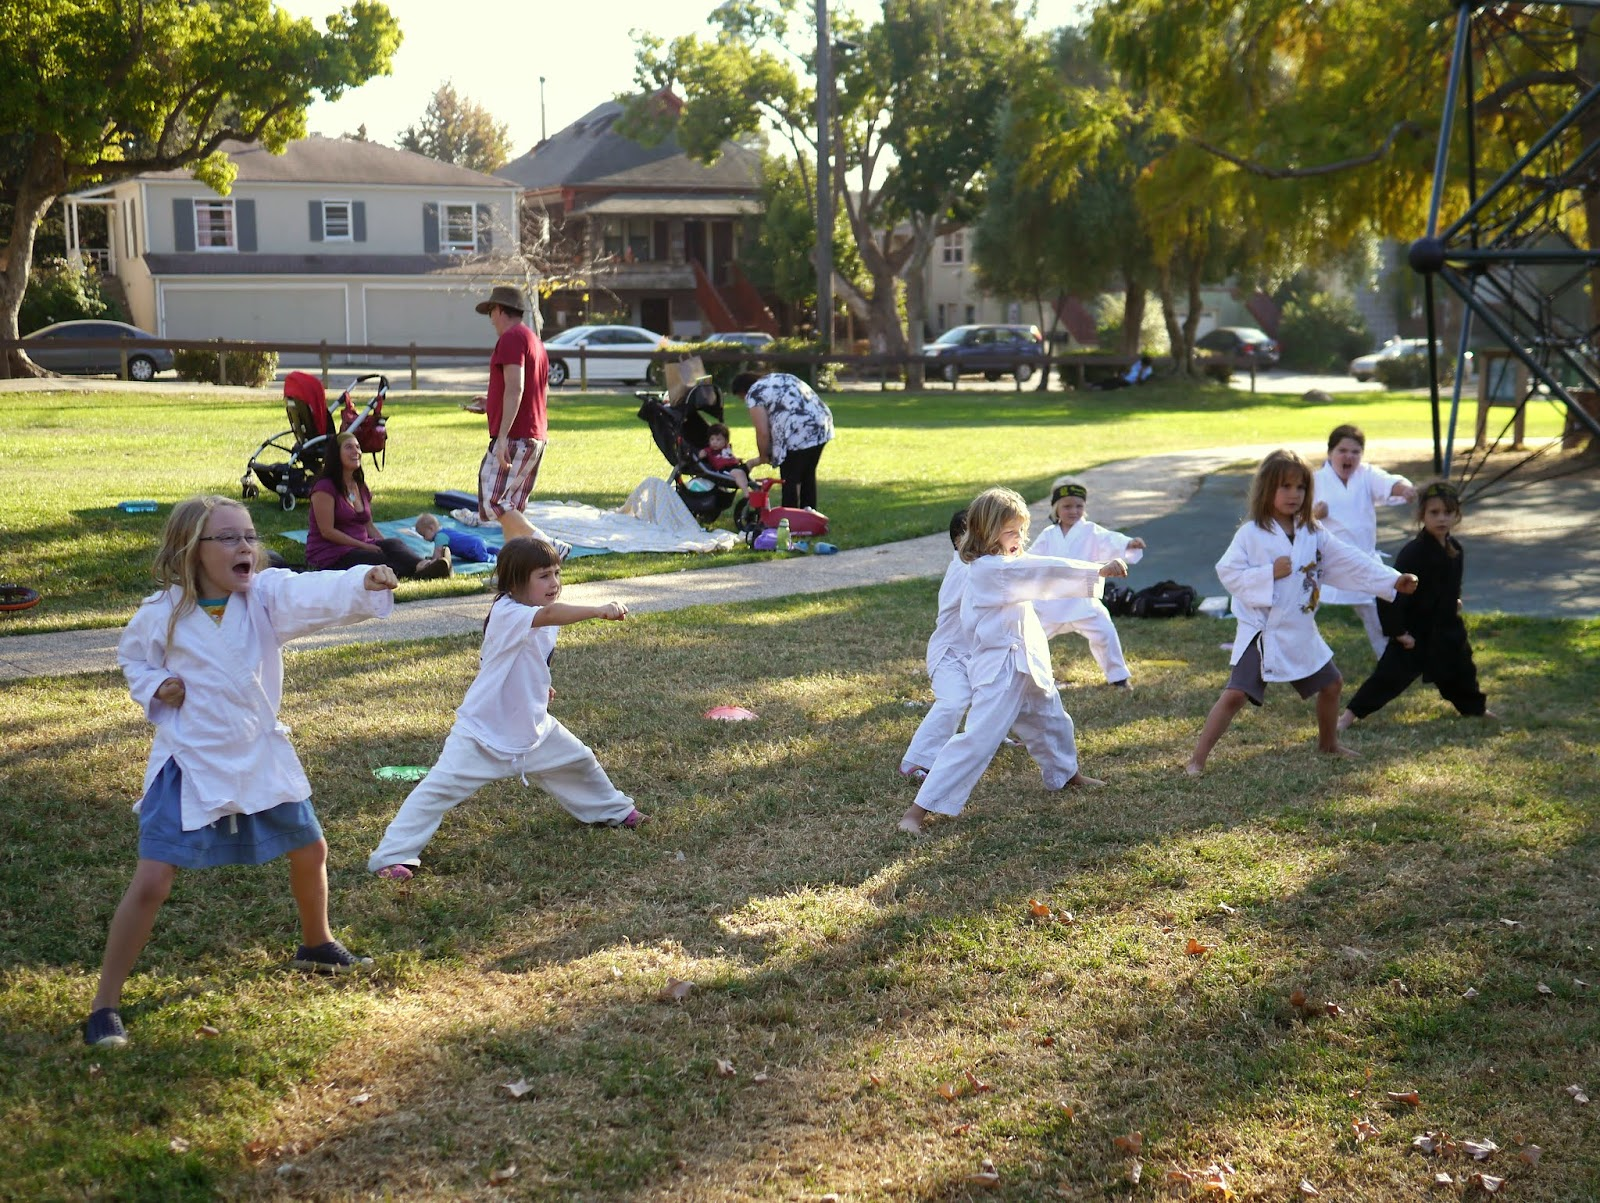 i love how crazy the kids look when they practice their kicks